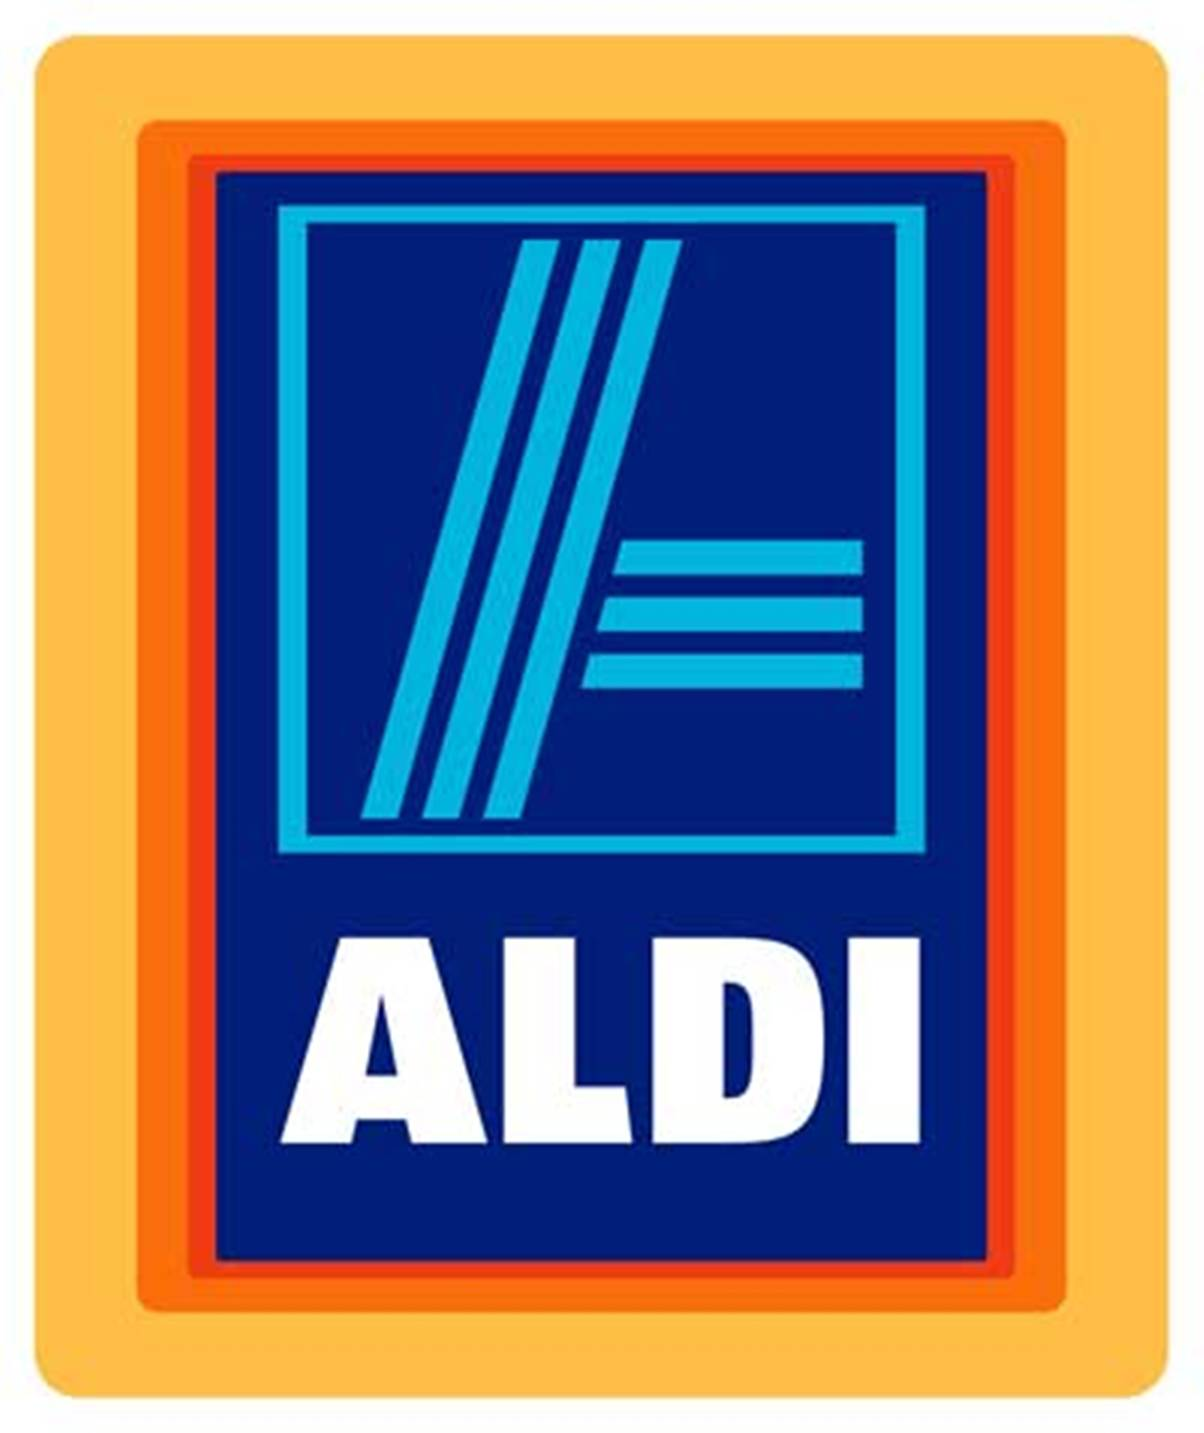 Decision due on plans for Aldi store in Chippy